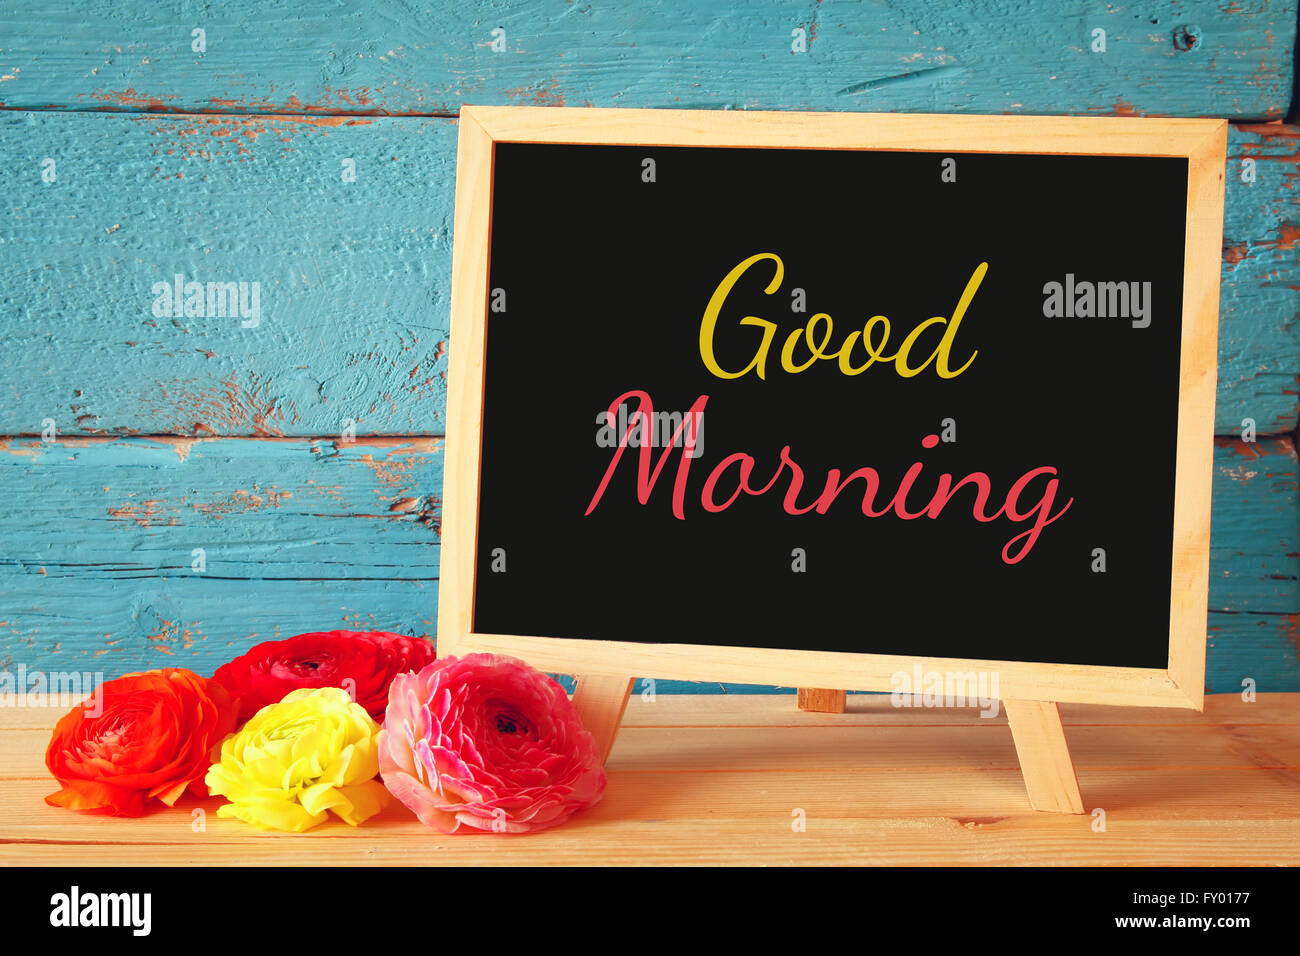 blackboard with the phrase good morning written on it next to fresh flowers. - Stock Image